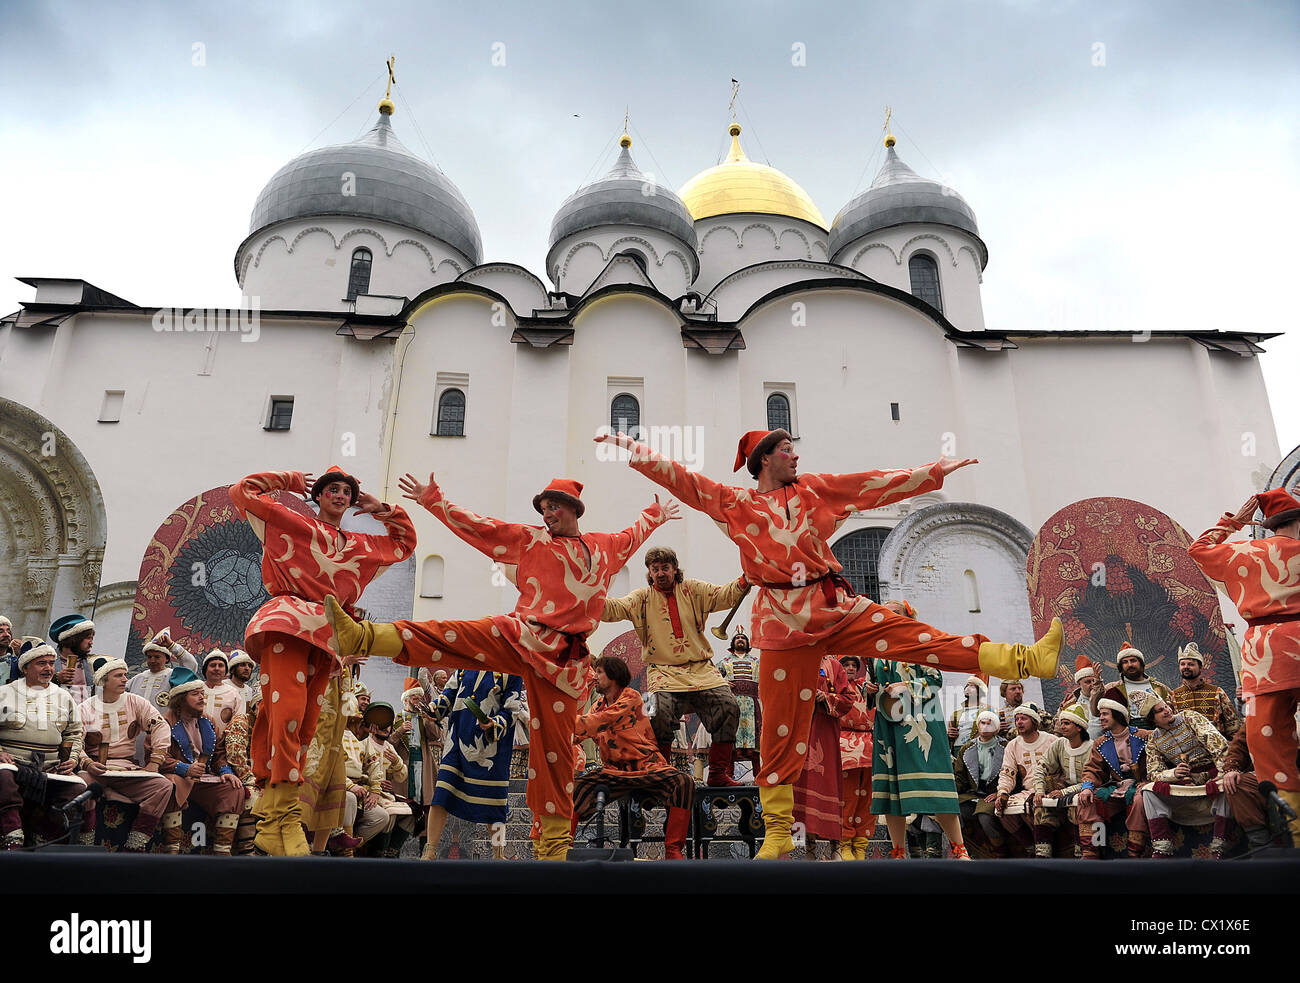 ITAR-TASS: VELIKY NOVGOROD, RUSSIA. JUNE 13, 2011. Artistes of the Mariinsky Theatre appear in a scene from an open - Stock Image